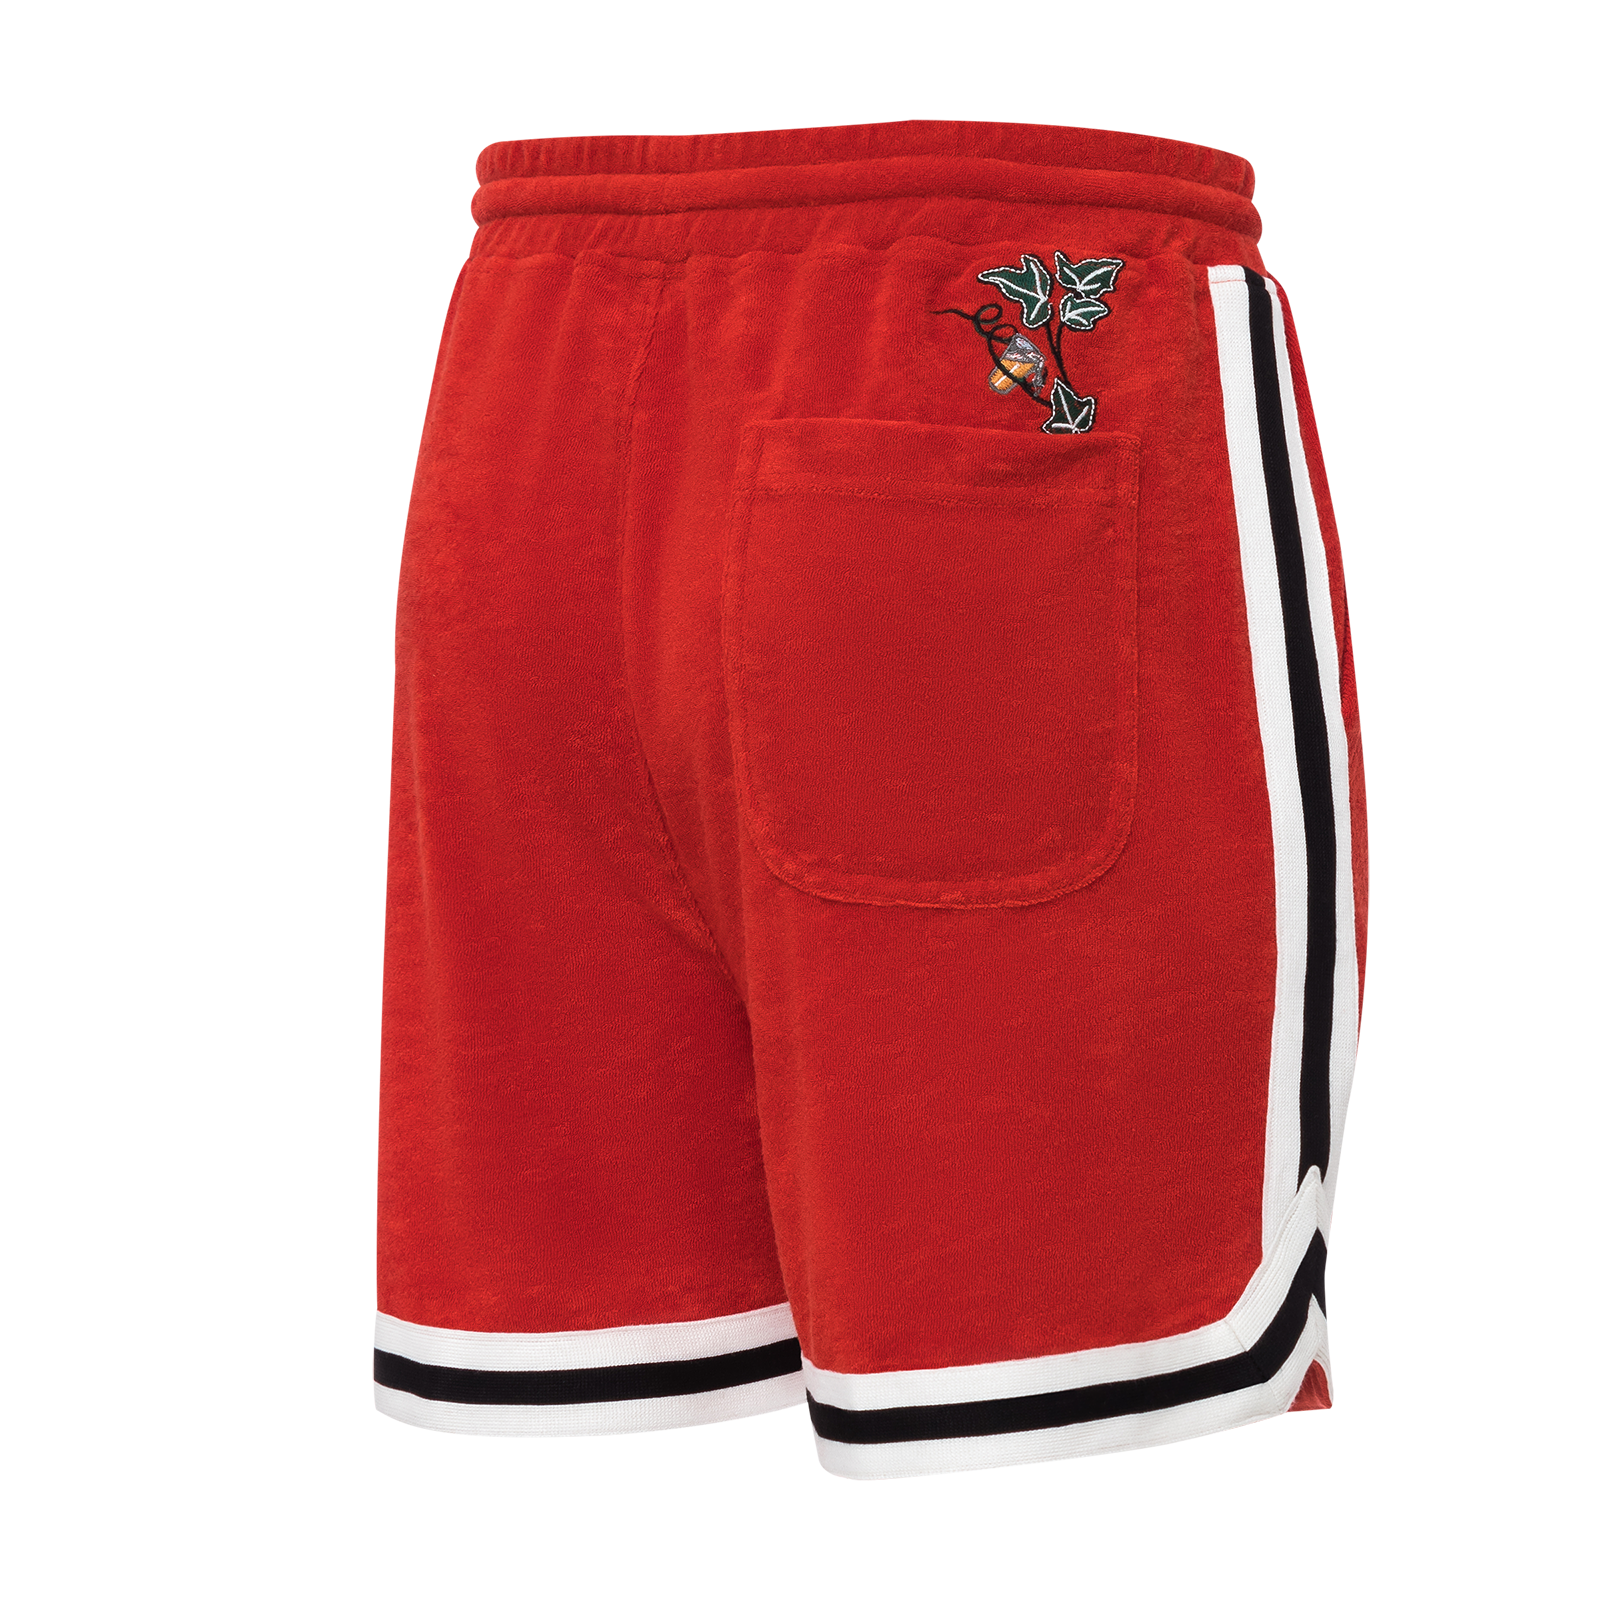 Ghost mannequin shorts product picture